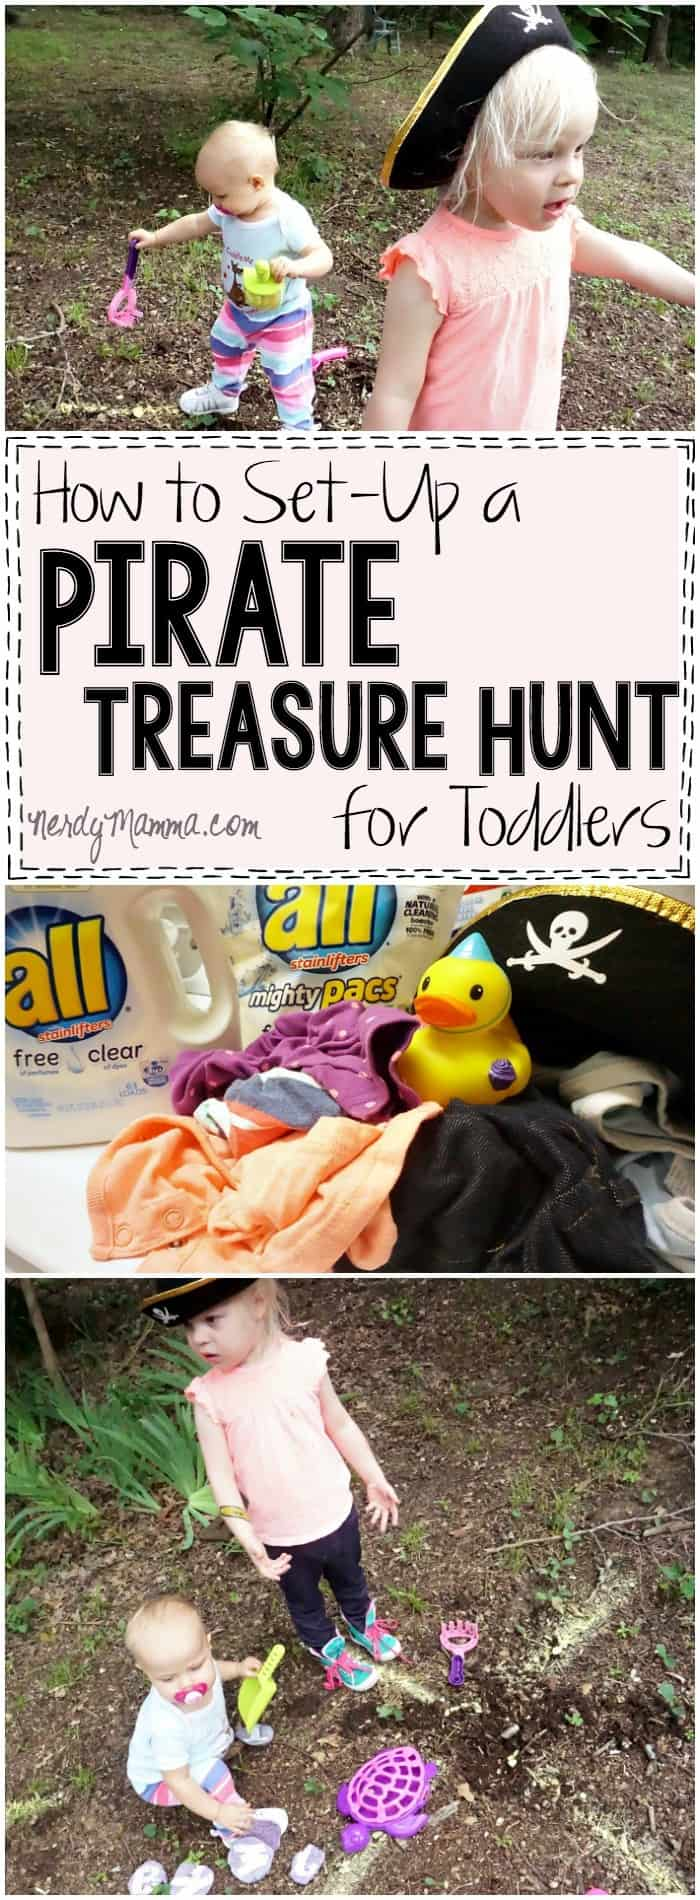 I love this easy pirate treasure hunt activity for toddlers! How simple--and cute!